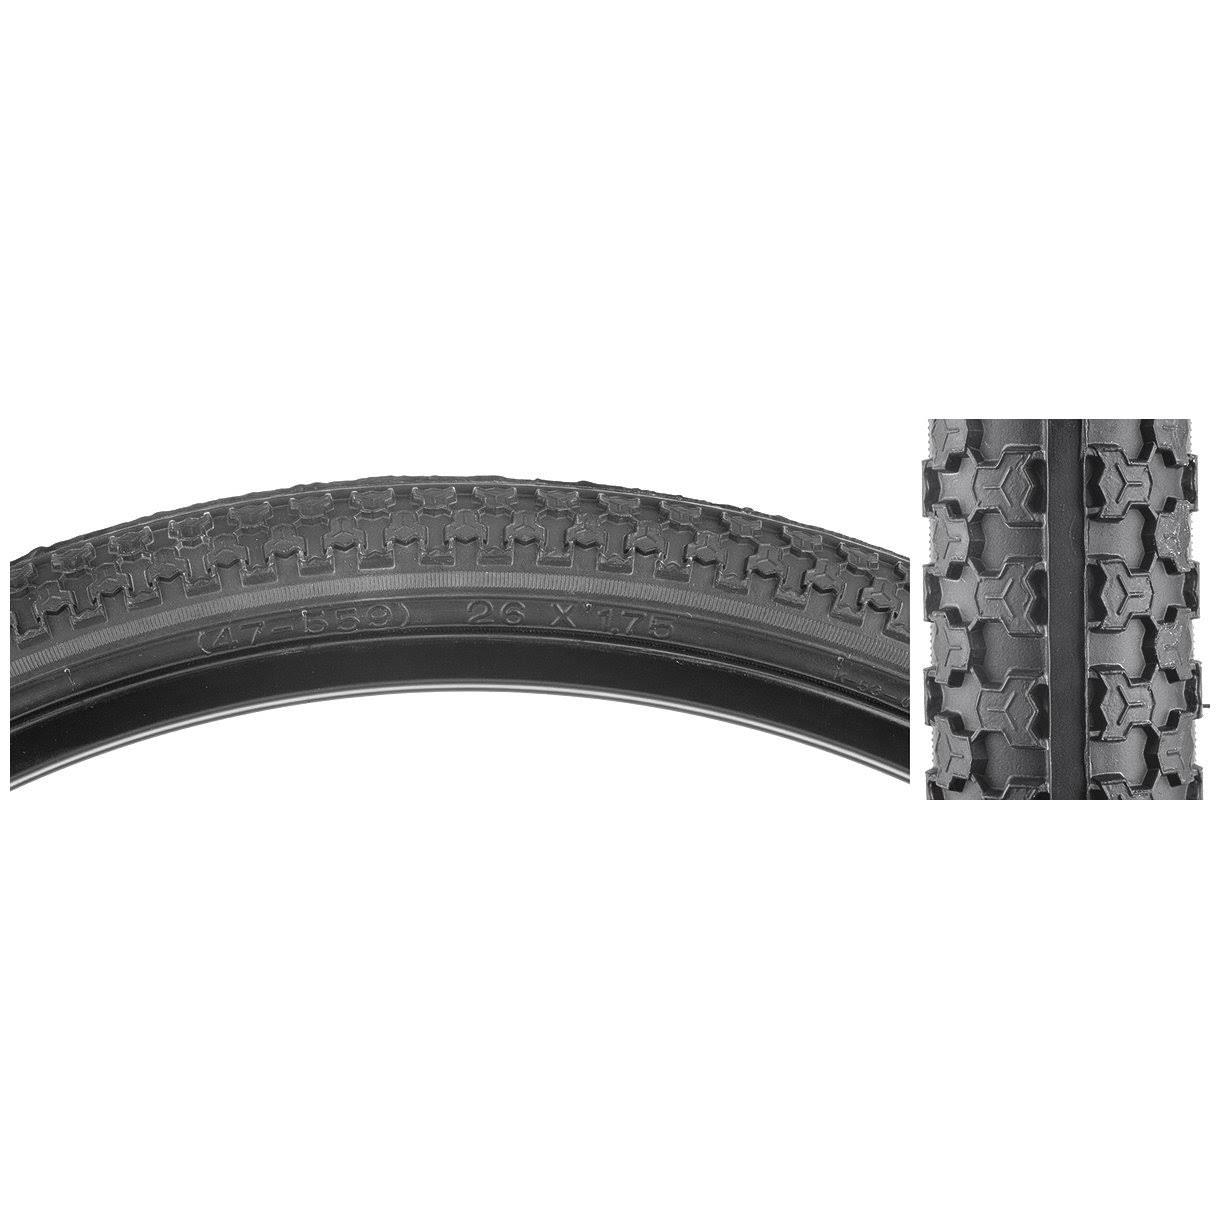 Sunlite MTB Raised Center 26x1.75 Mountain Tire